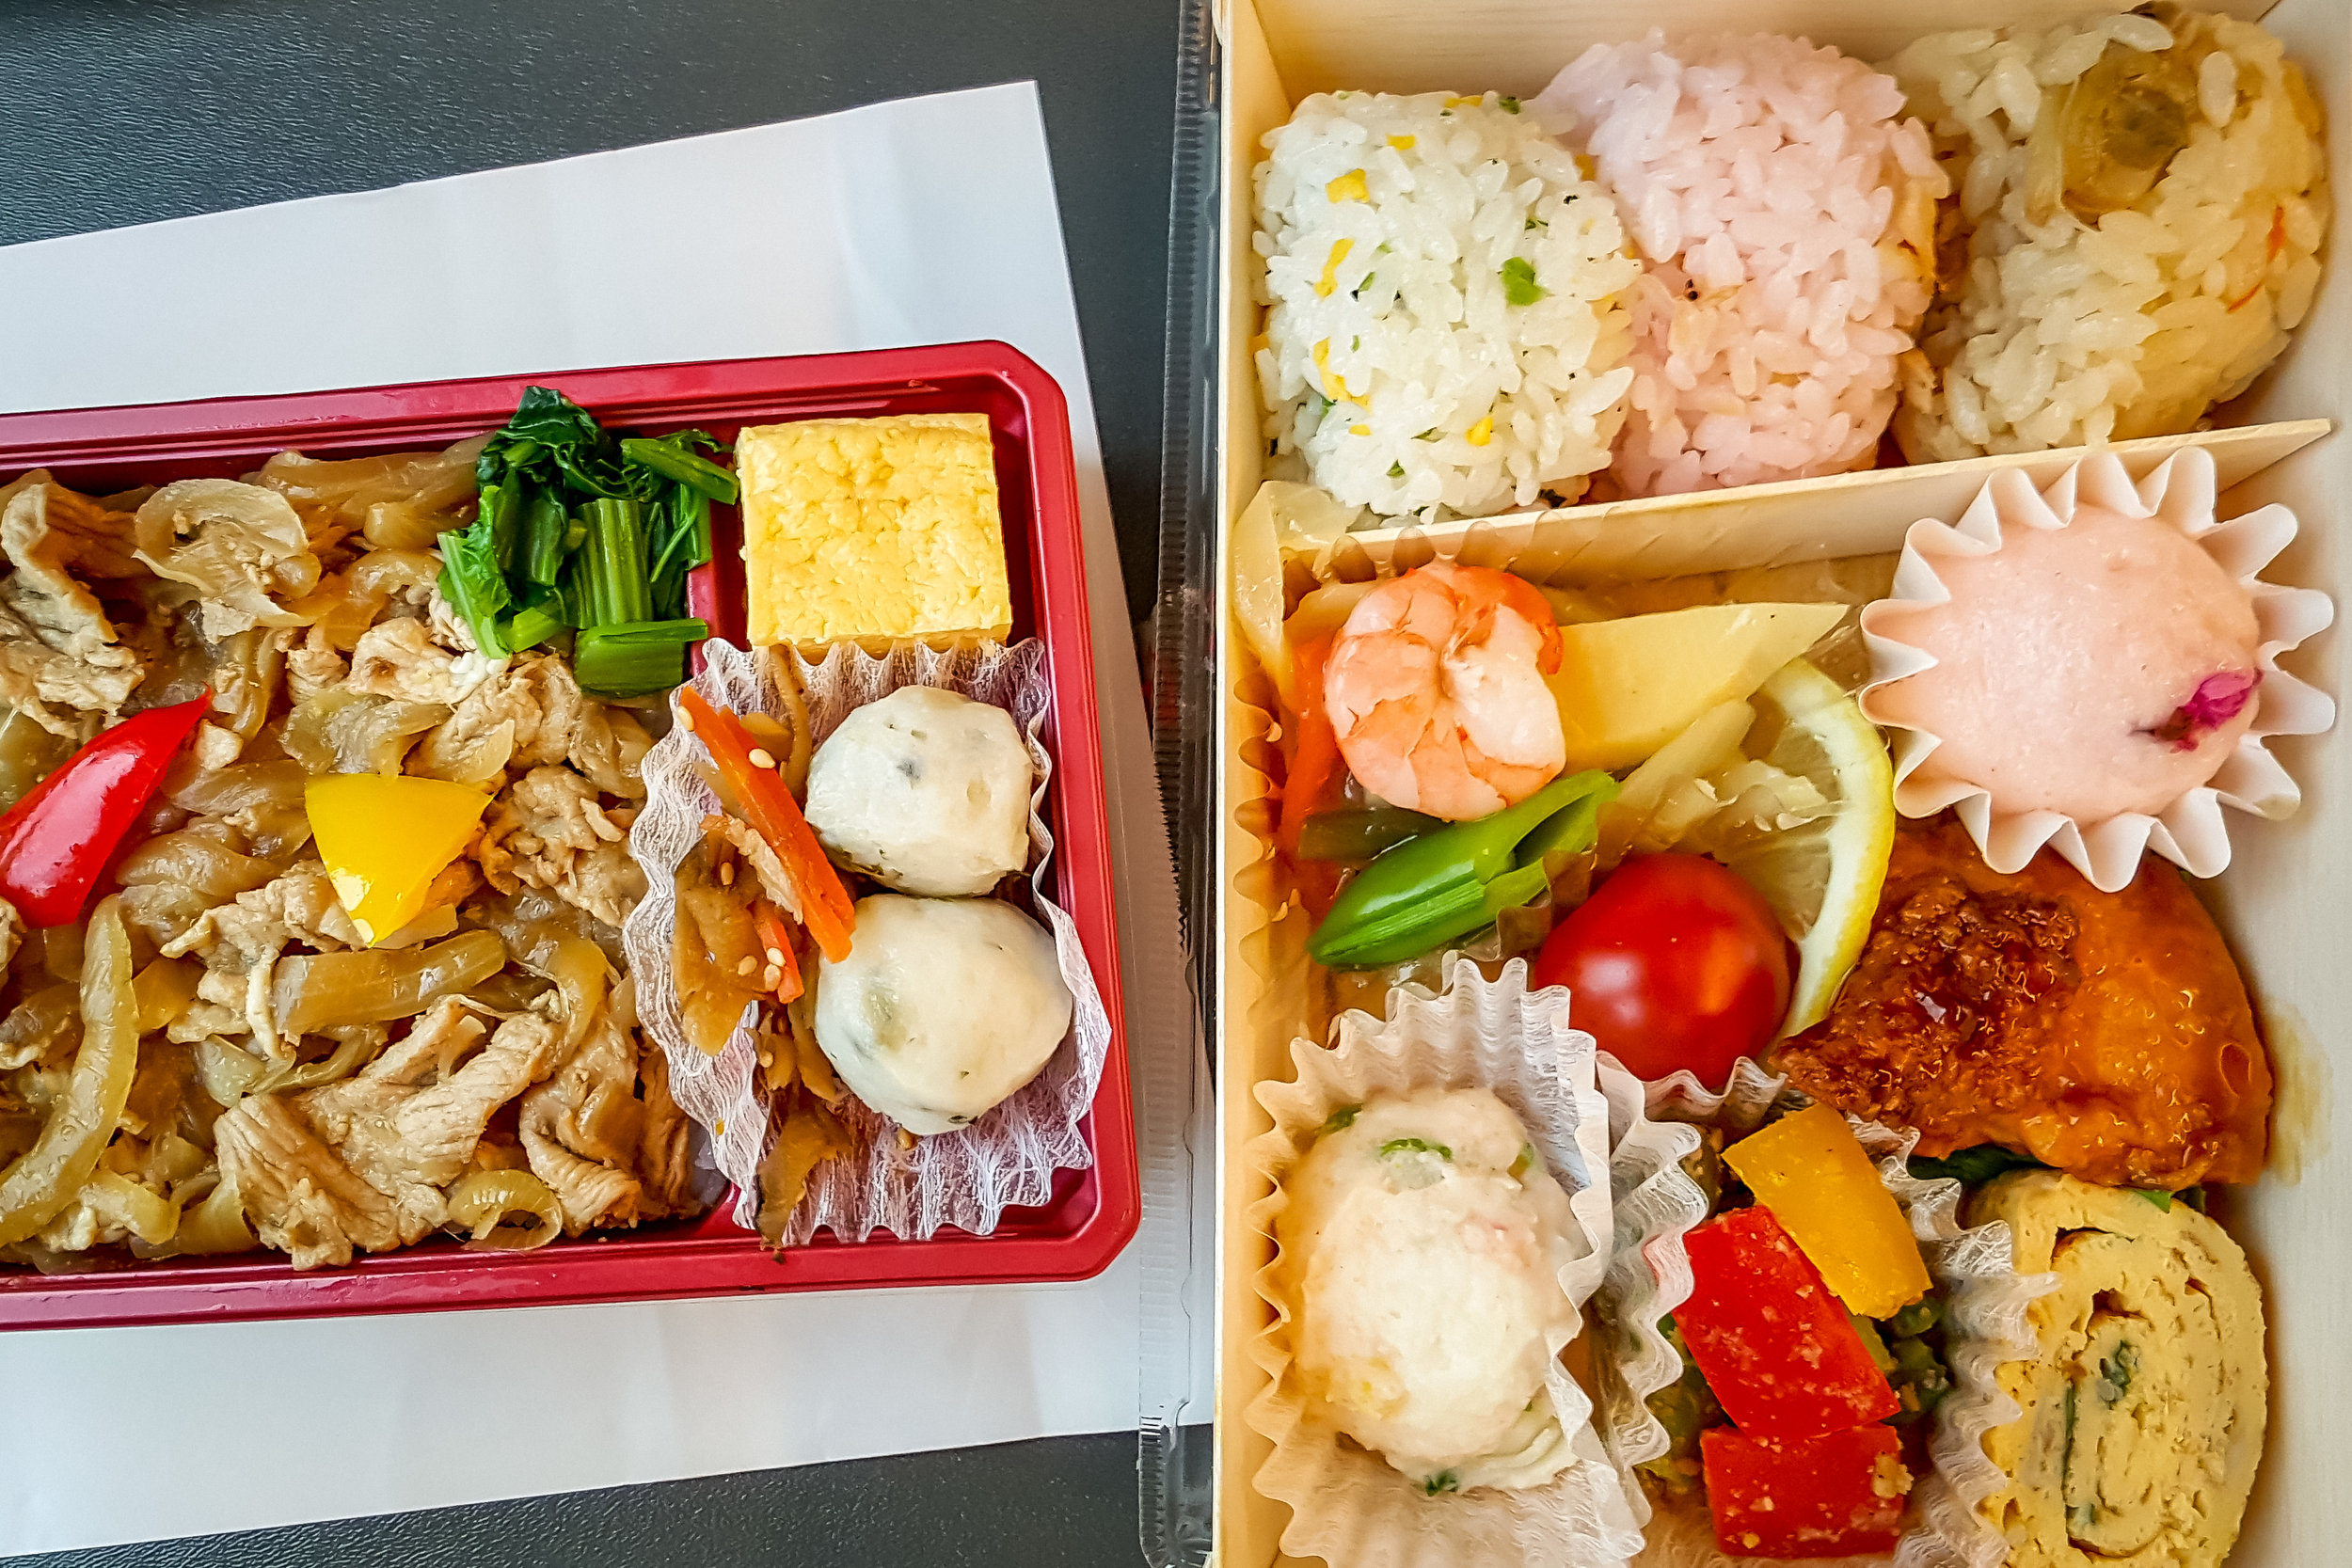 - In case you wondered what does a bento box look like, here is a photo I impatiently took on the train to Osaka (you'll excuse me given the circumstances).If you enjoyed this story, let's connect on Facebook Instagram or Twitter- I'd love to hear from you.